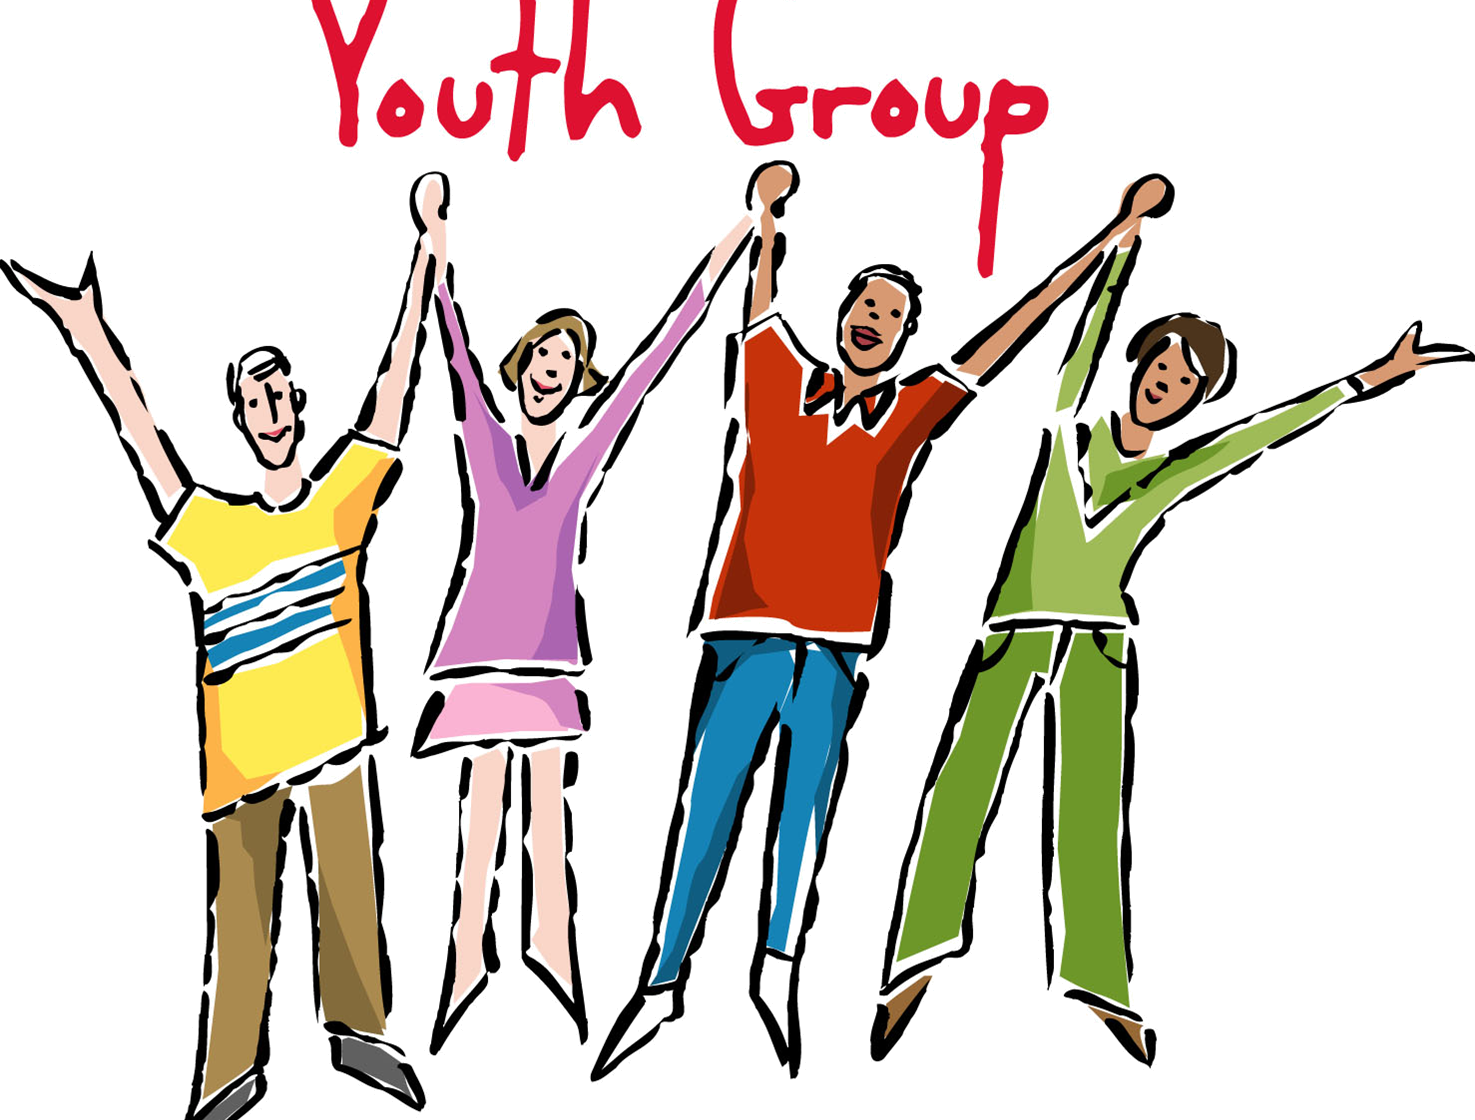 Volunteering clipart person. Youth